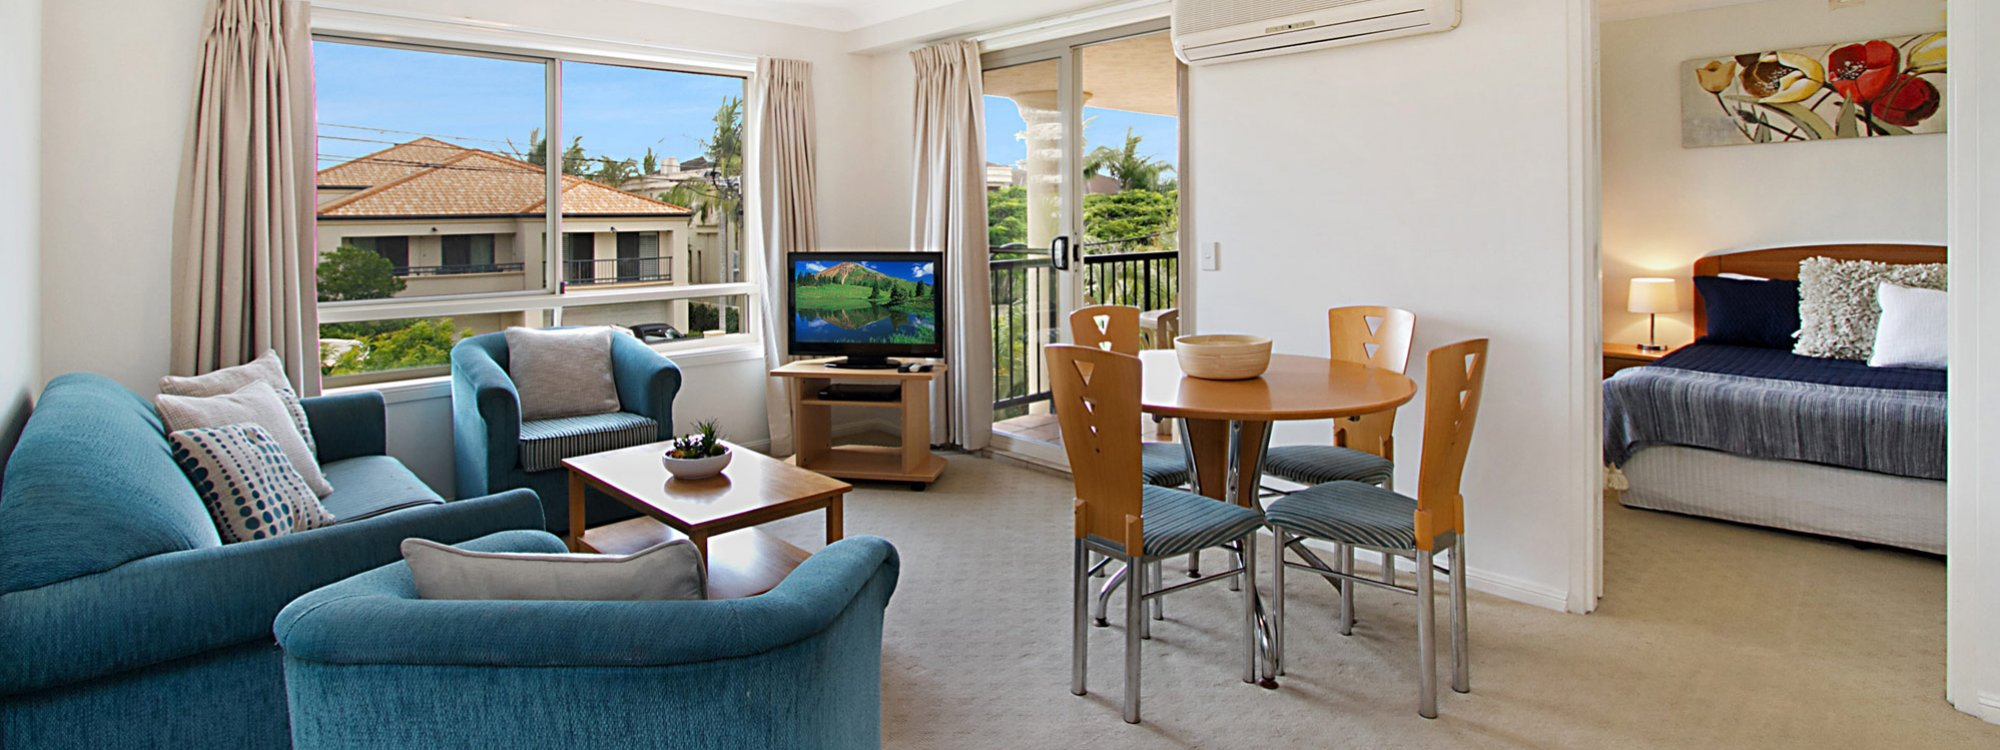 Sunset In Surfers - Gold Coast - Living Room a